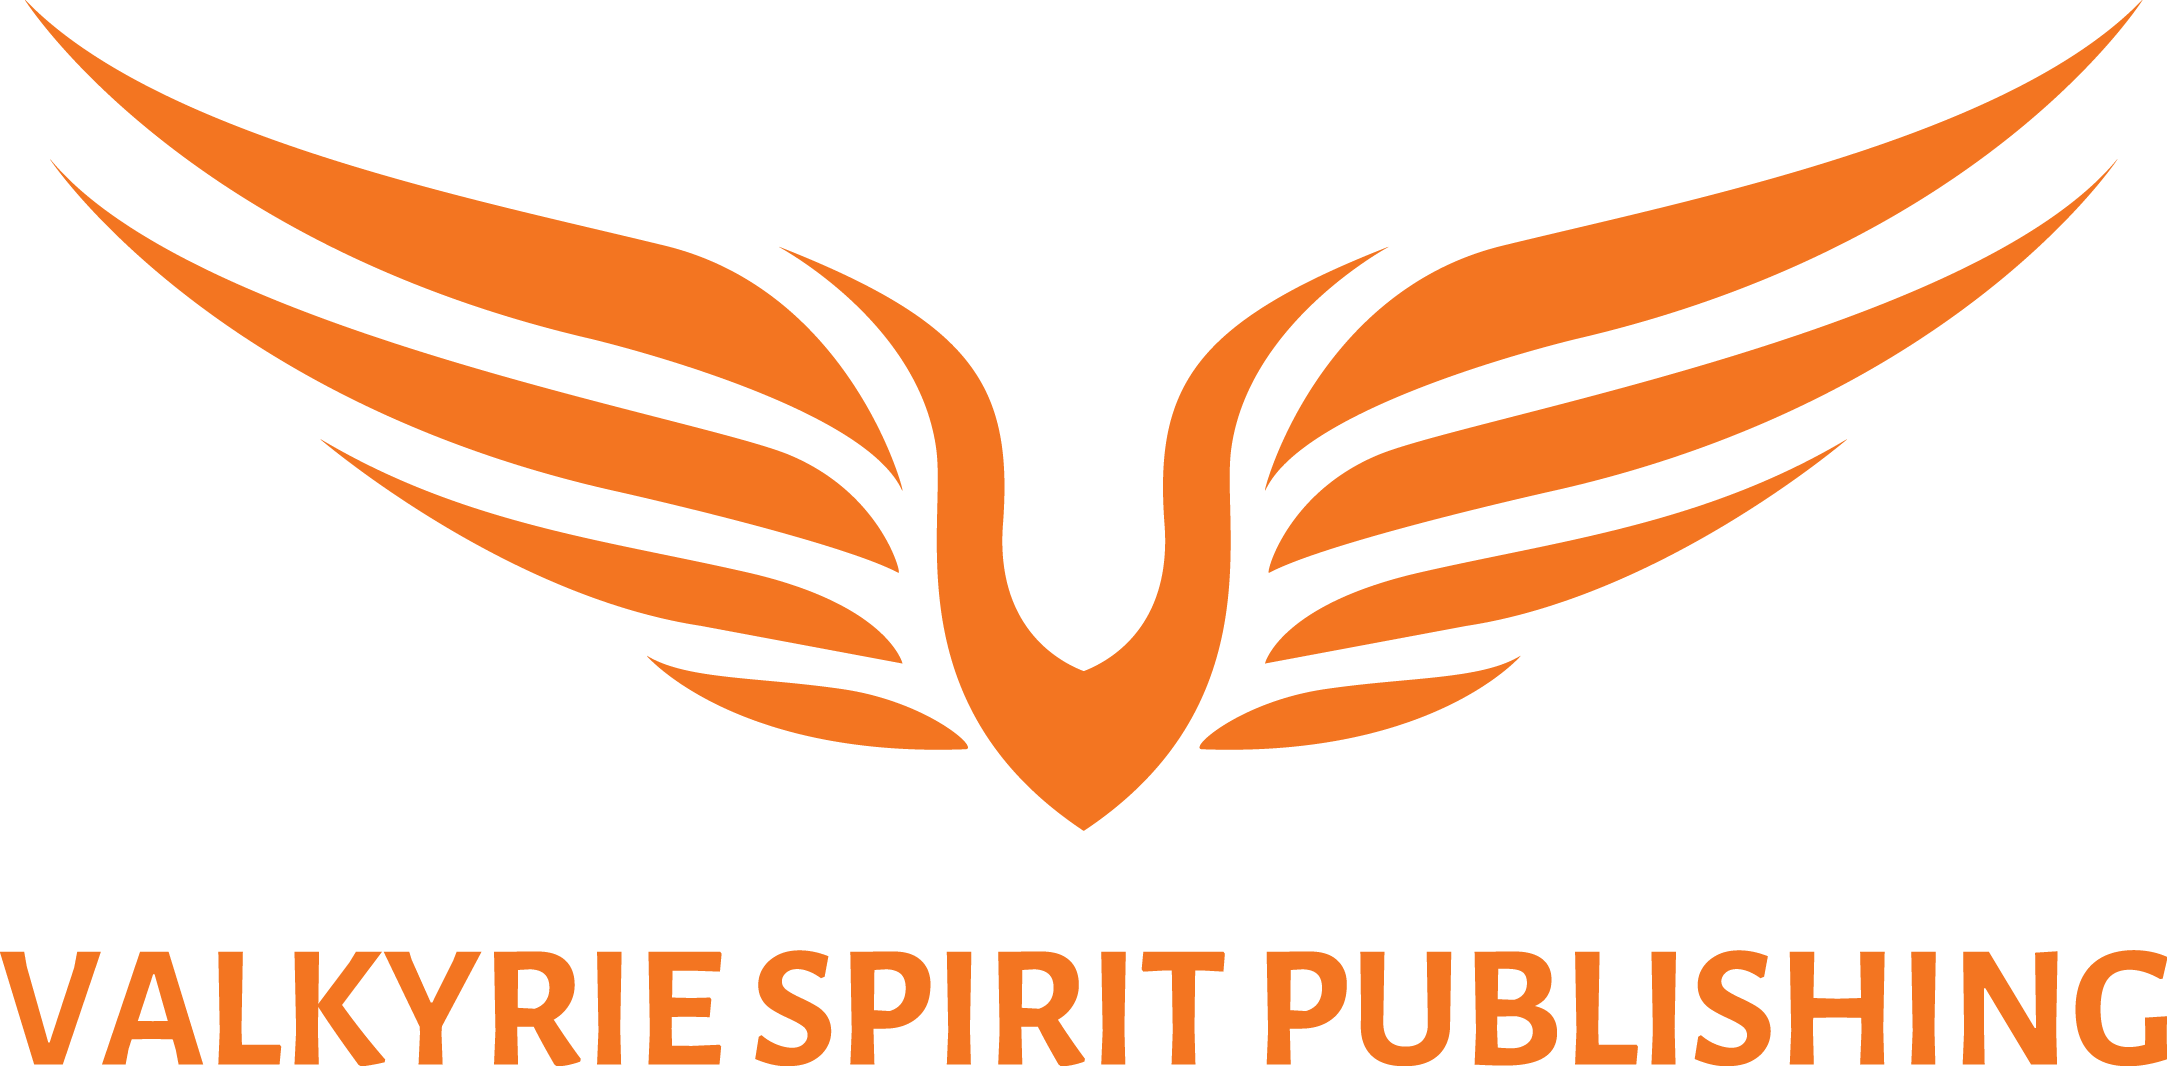 Valkyrie Spirit Publishing